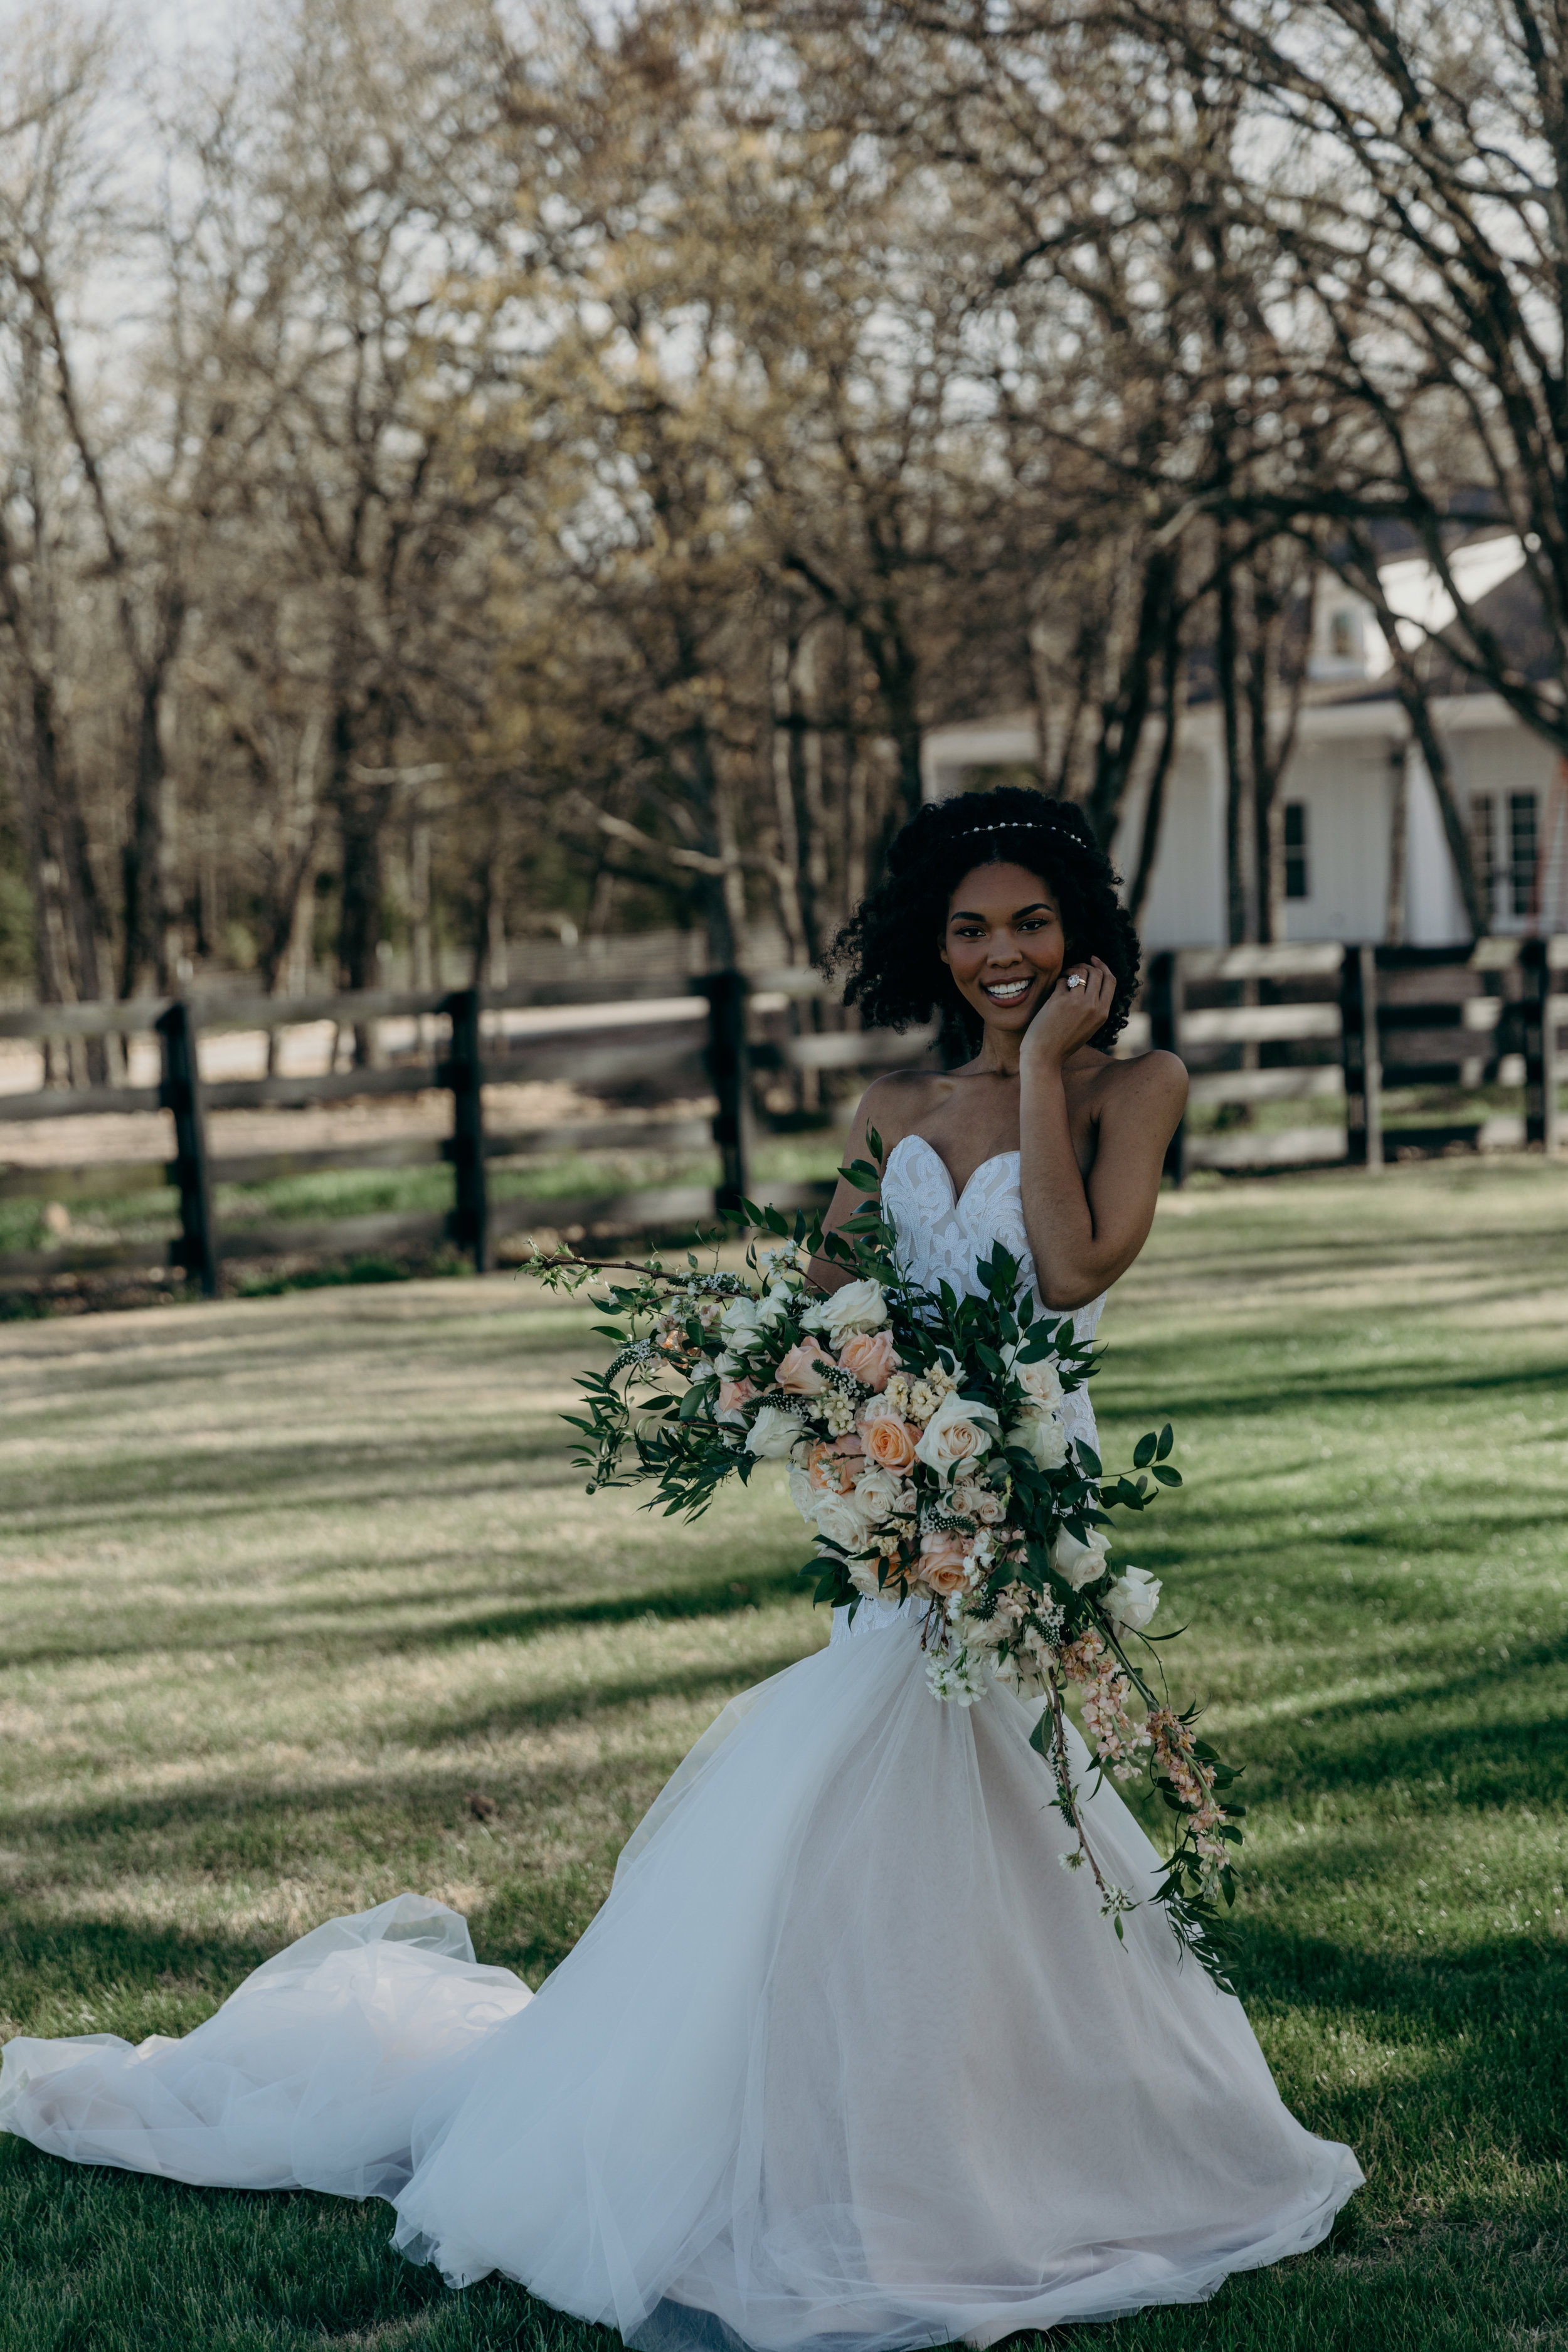 TheWhiteSparrowStyledWeddingShootinTexas-68.jpg